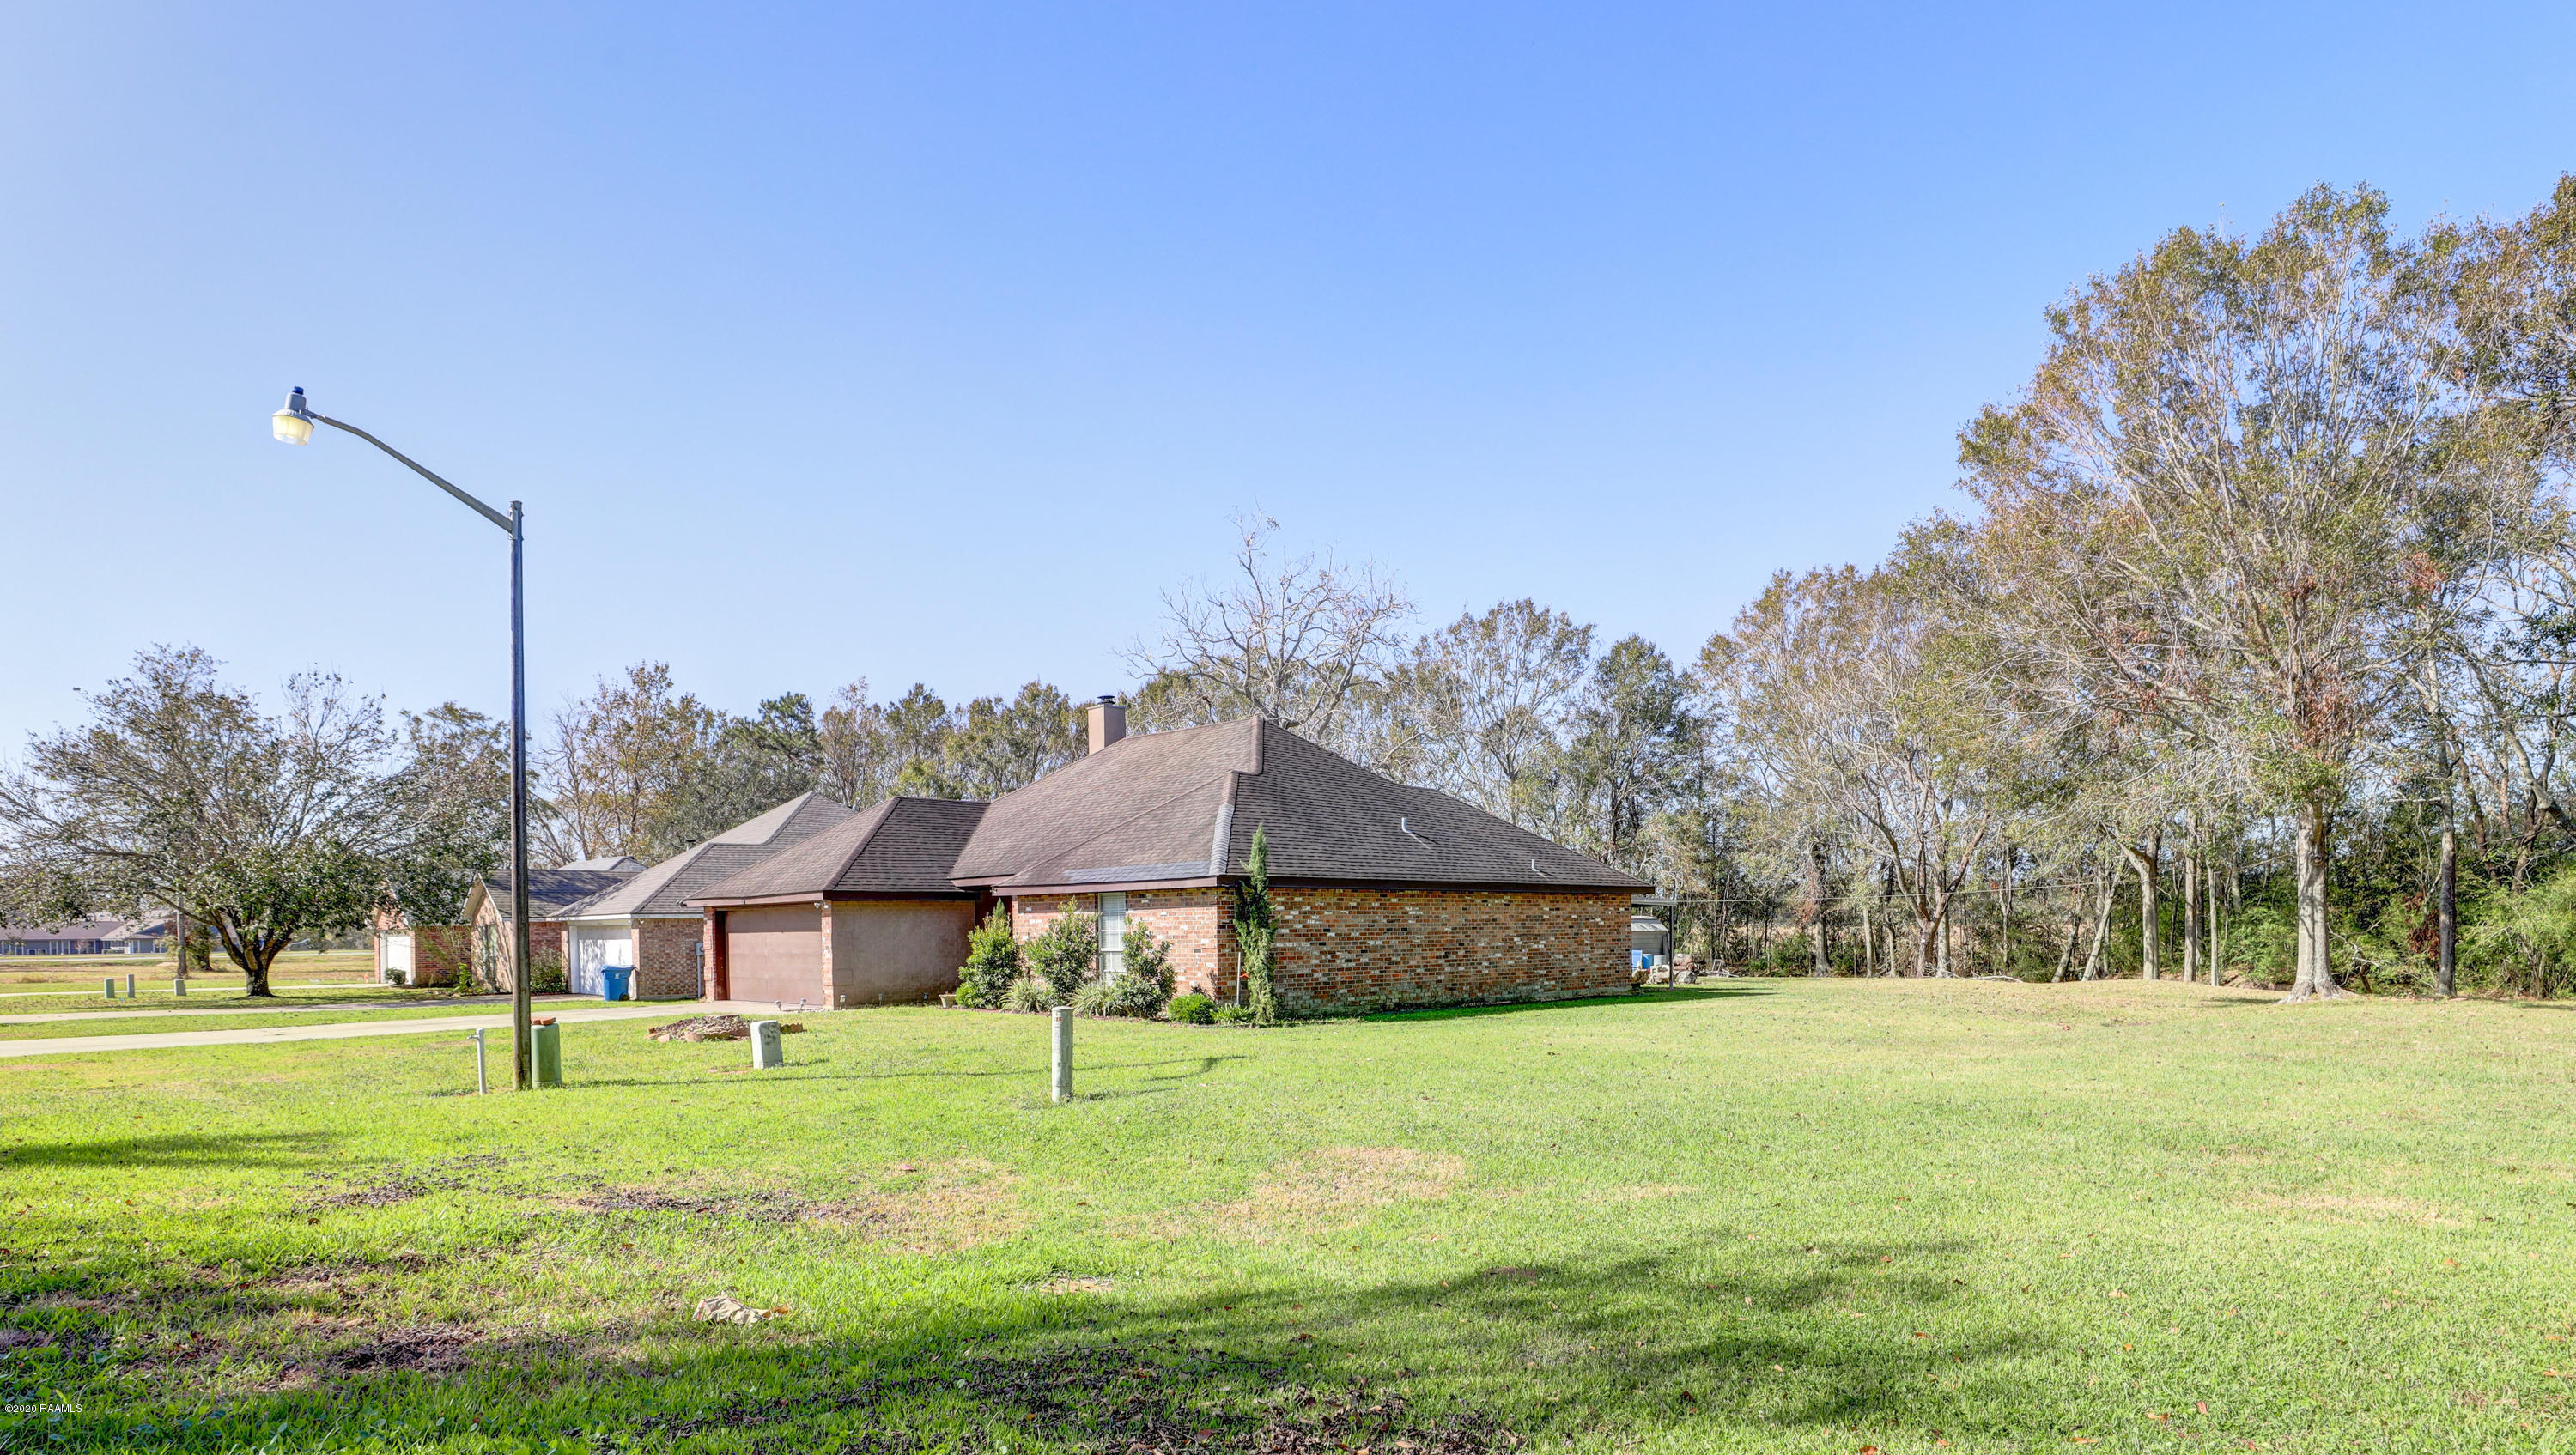 200 Olive Branch Drive, Youngsville, LA 70592 Photo #4